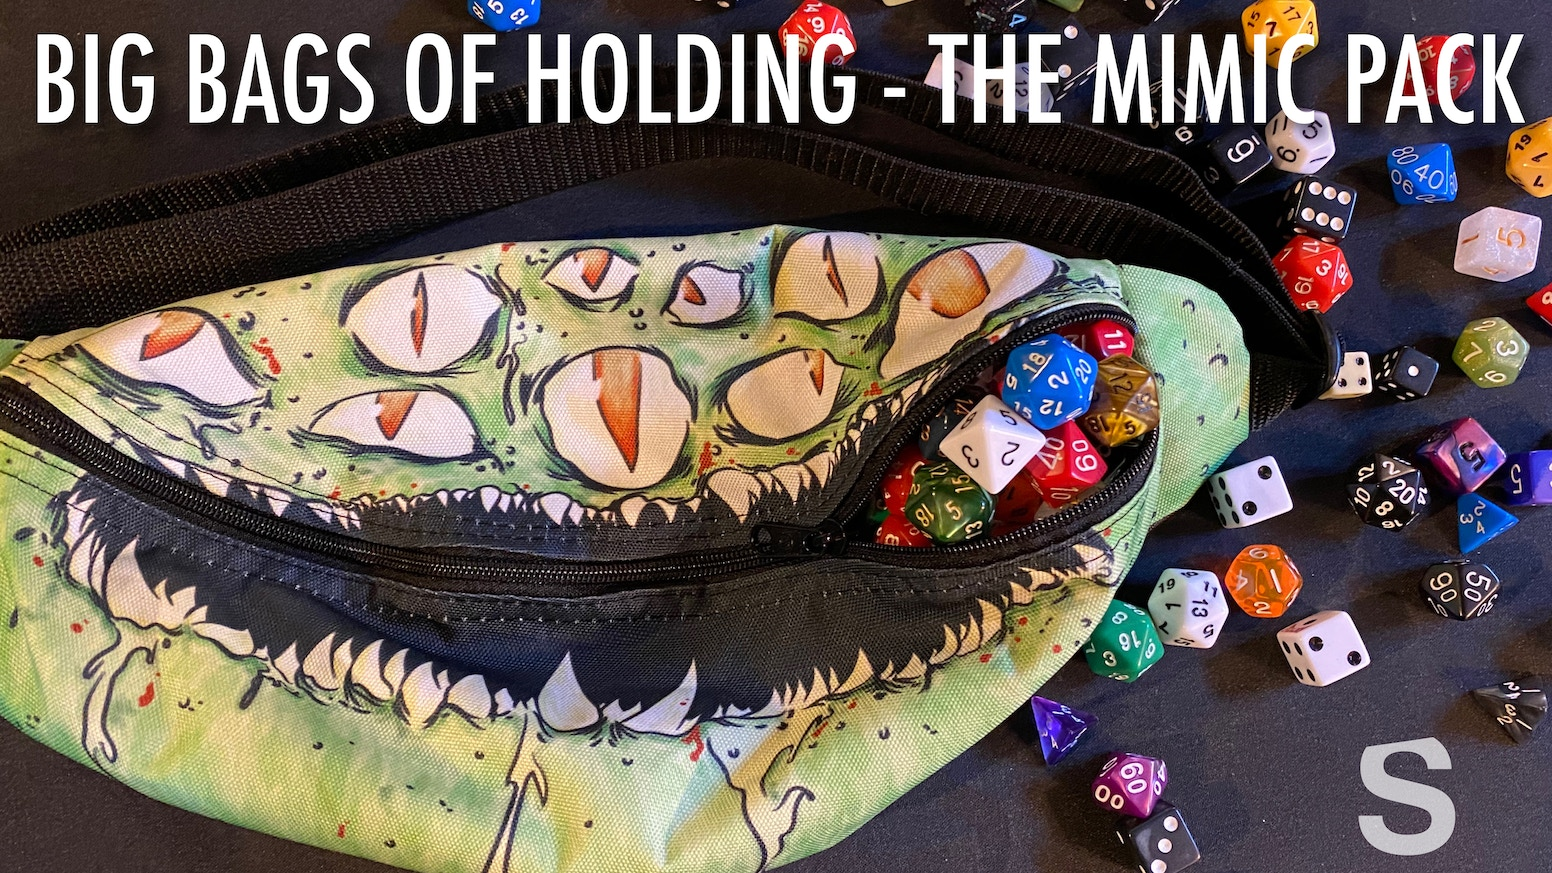 Bag of Holding - Mimic Fanny Packs for Dice and Loot. Dungeons and Dragons, Pathfinder, or any fantasy RPG.